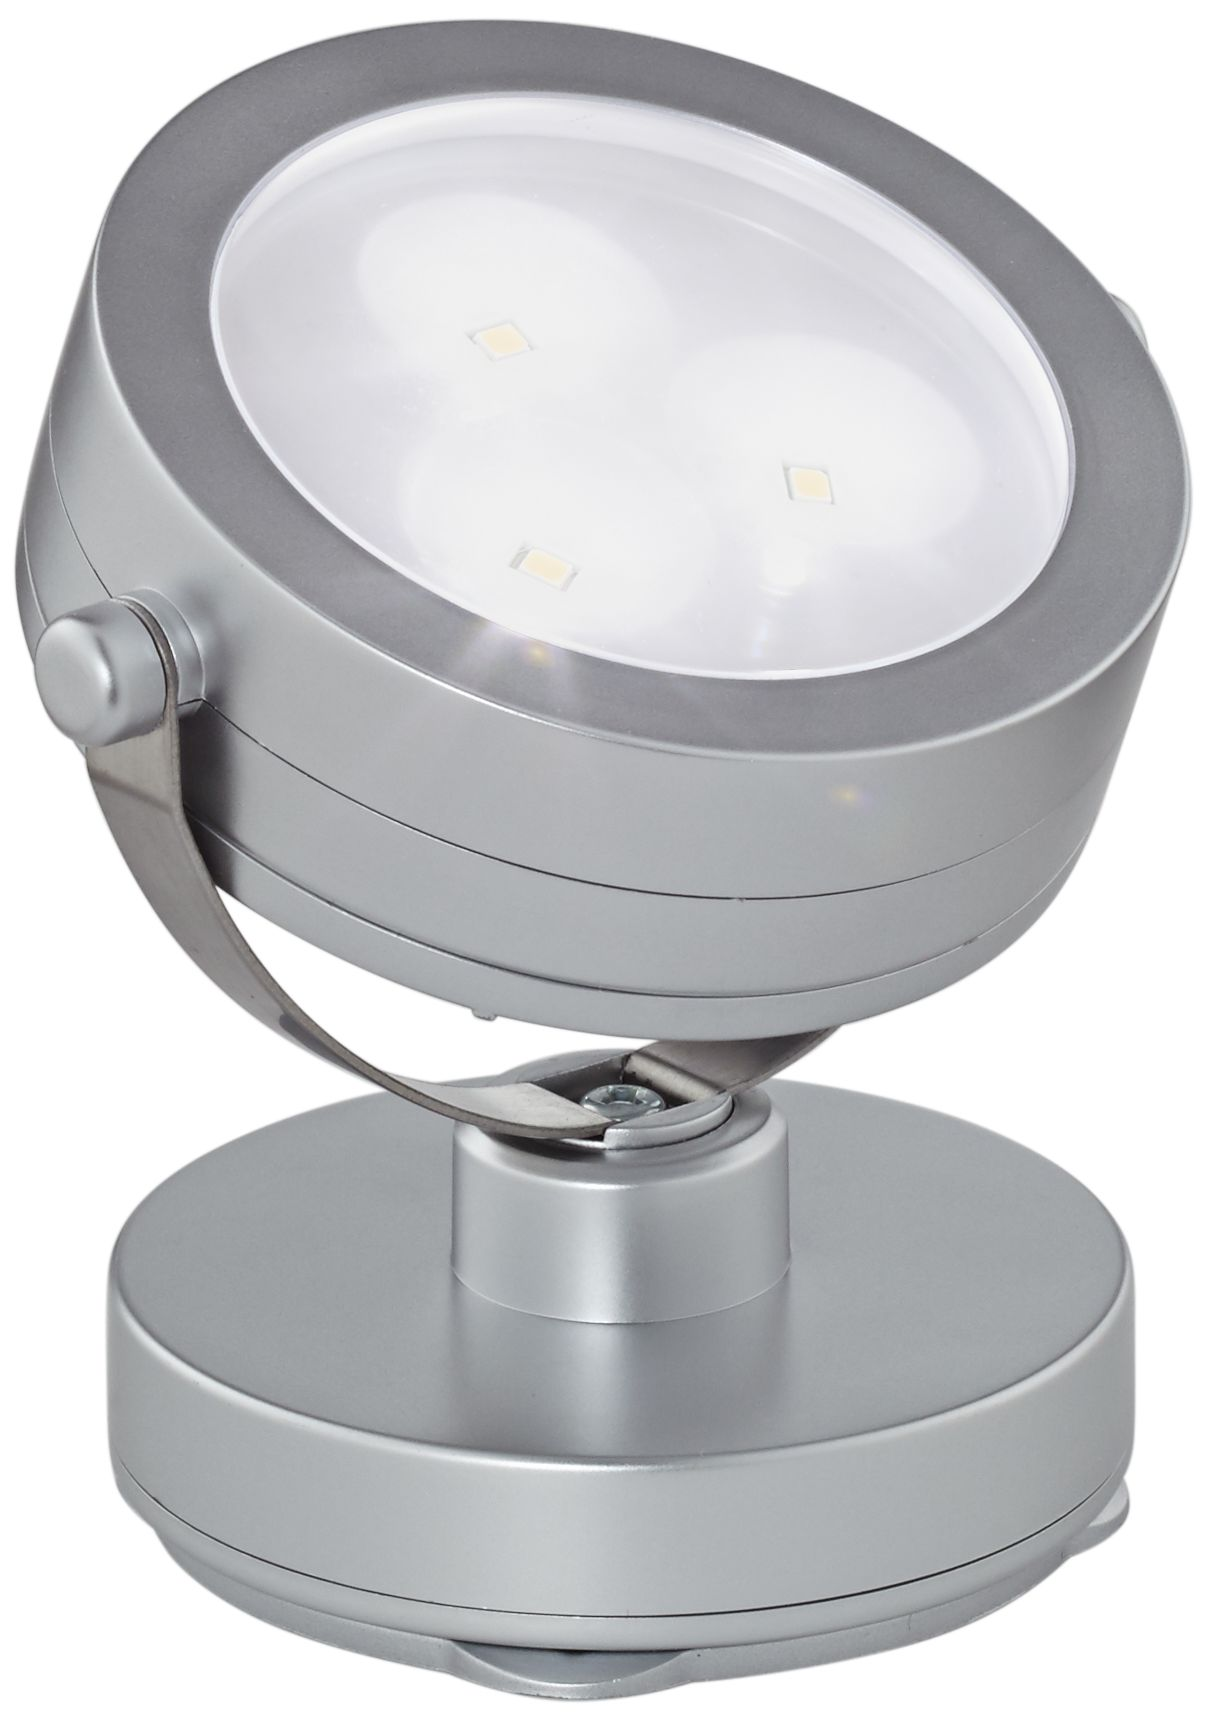 Single Head LED Battery Operated Uplight 93723 Lamps Plus